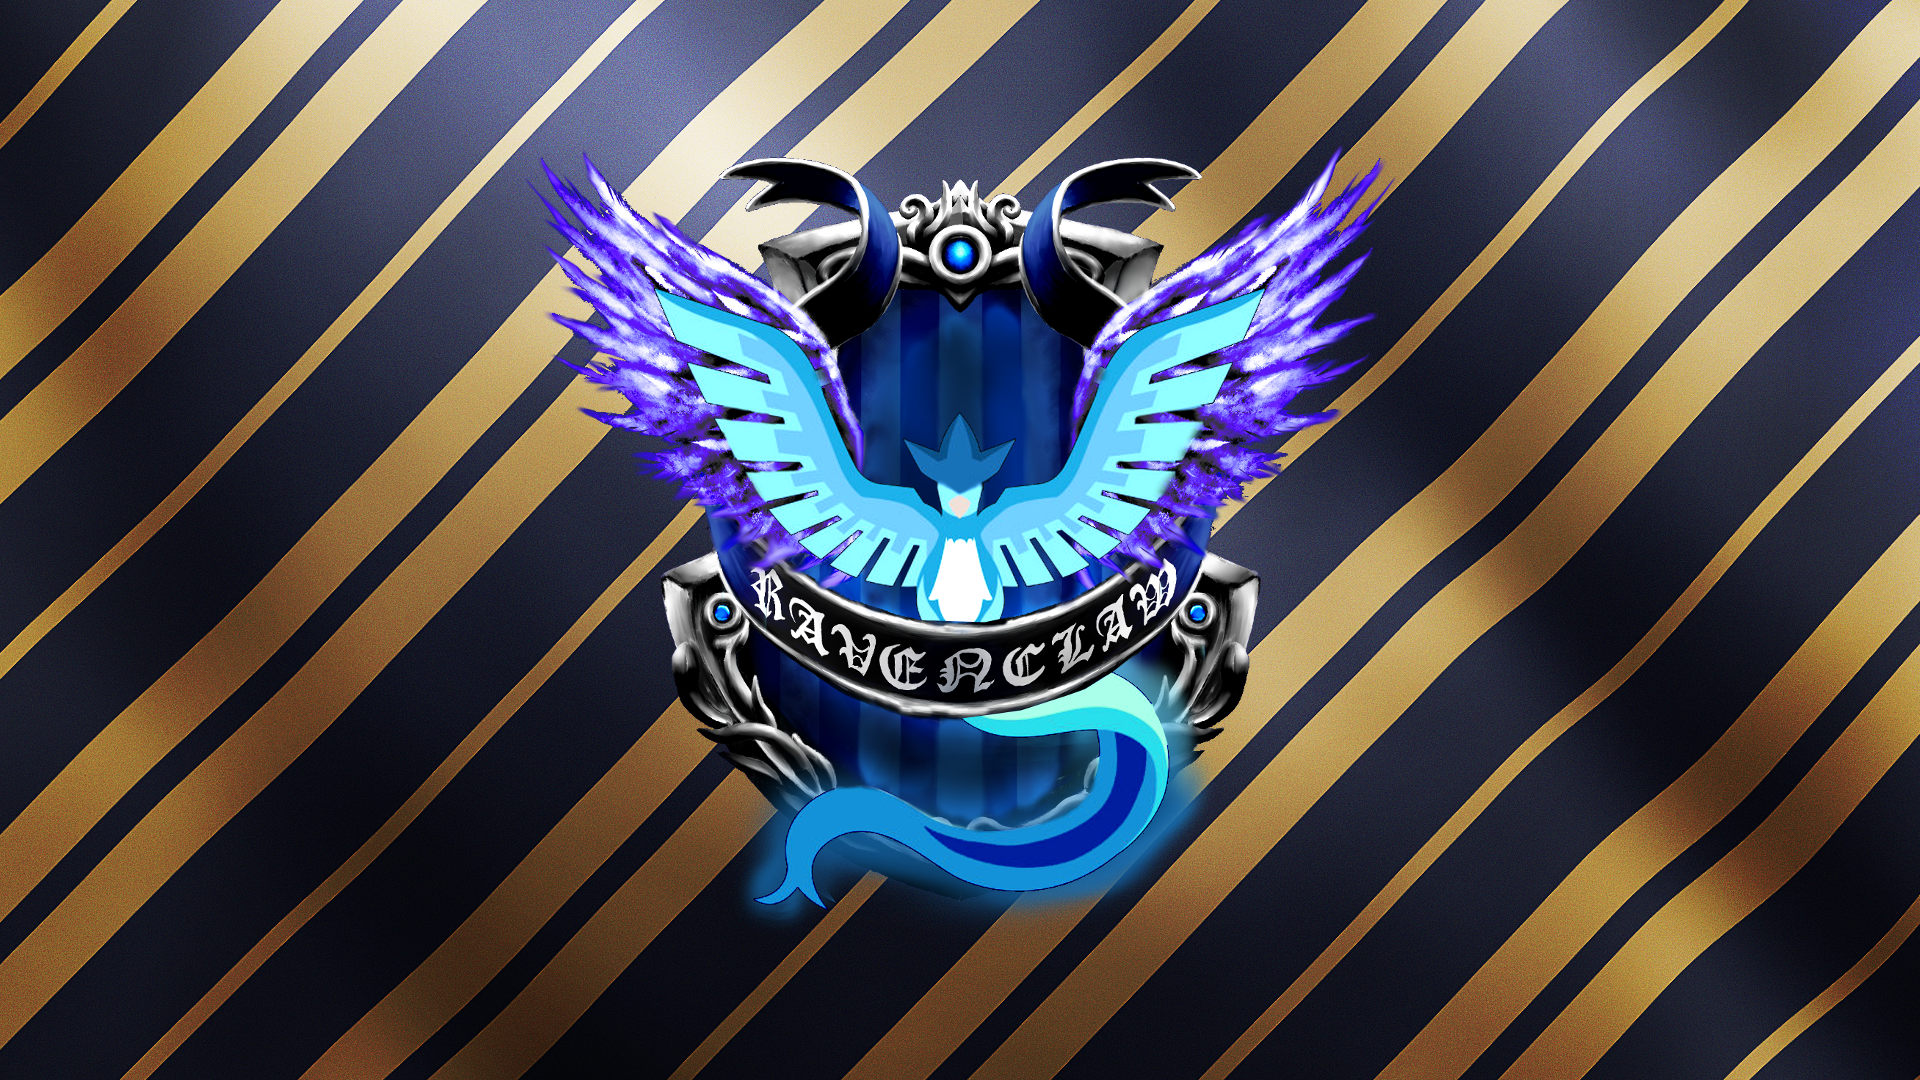 Cool Wallpaper Harry Potter Purple - harry_potter_ravenclaw_mystic_wallpaper_by_trypyro-dado95f  Image_37525.png